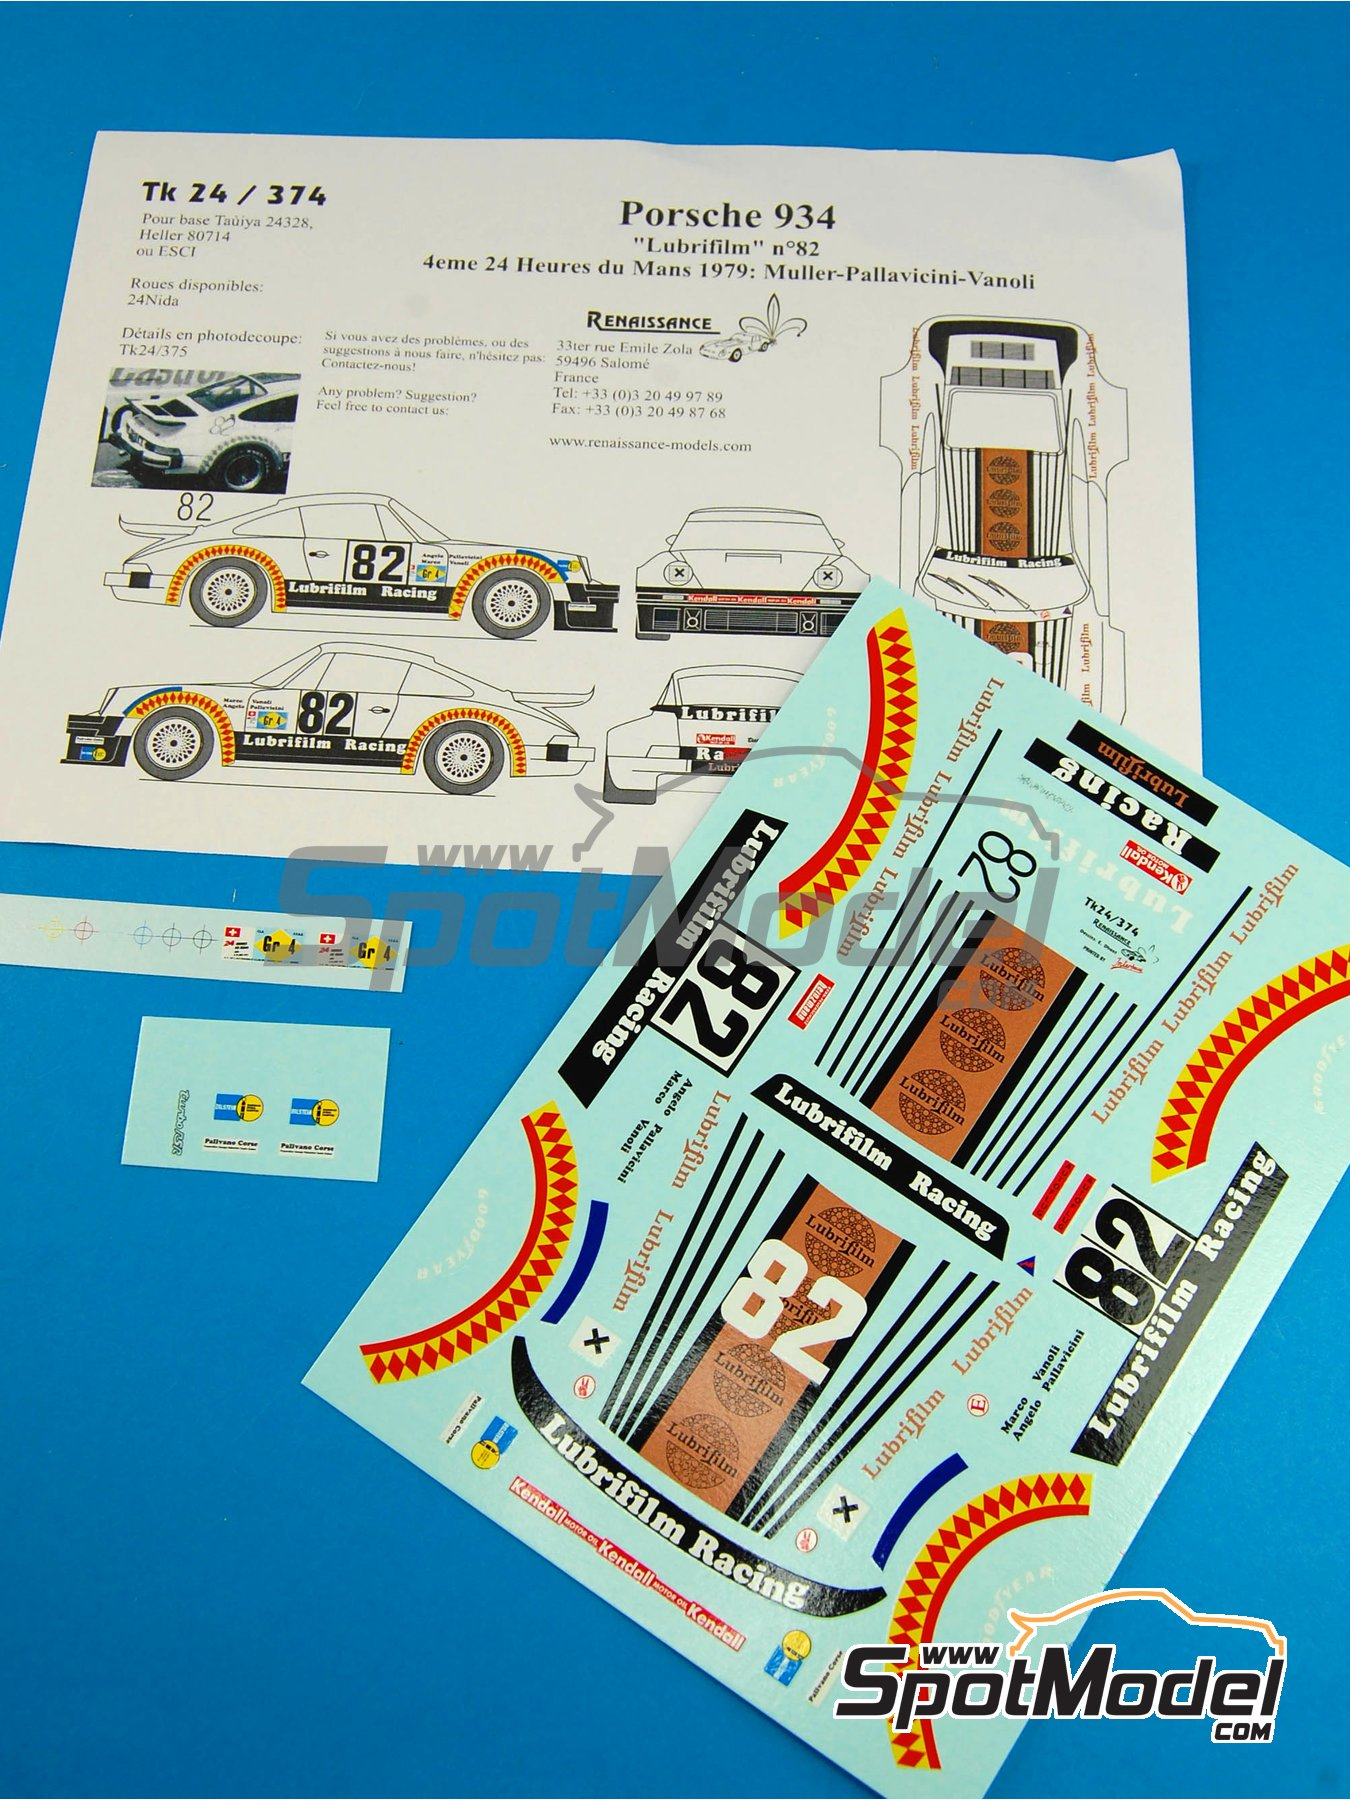 Porsche 934 Turbo RSR Group 4 Lubrifilm - 24 Hours Le Mans 1979 | Marking / livery in 1/24 scale manufactured by Renaissance Models (ref.TK24-374) image